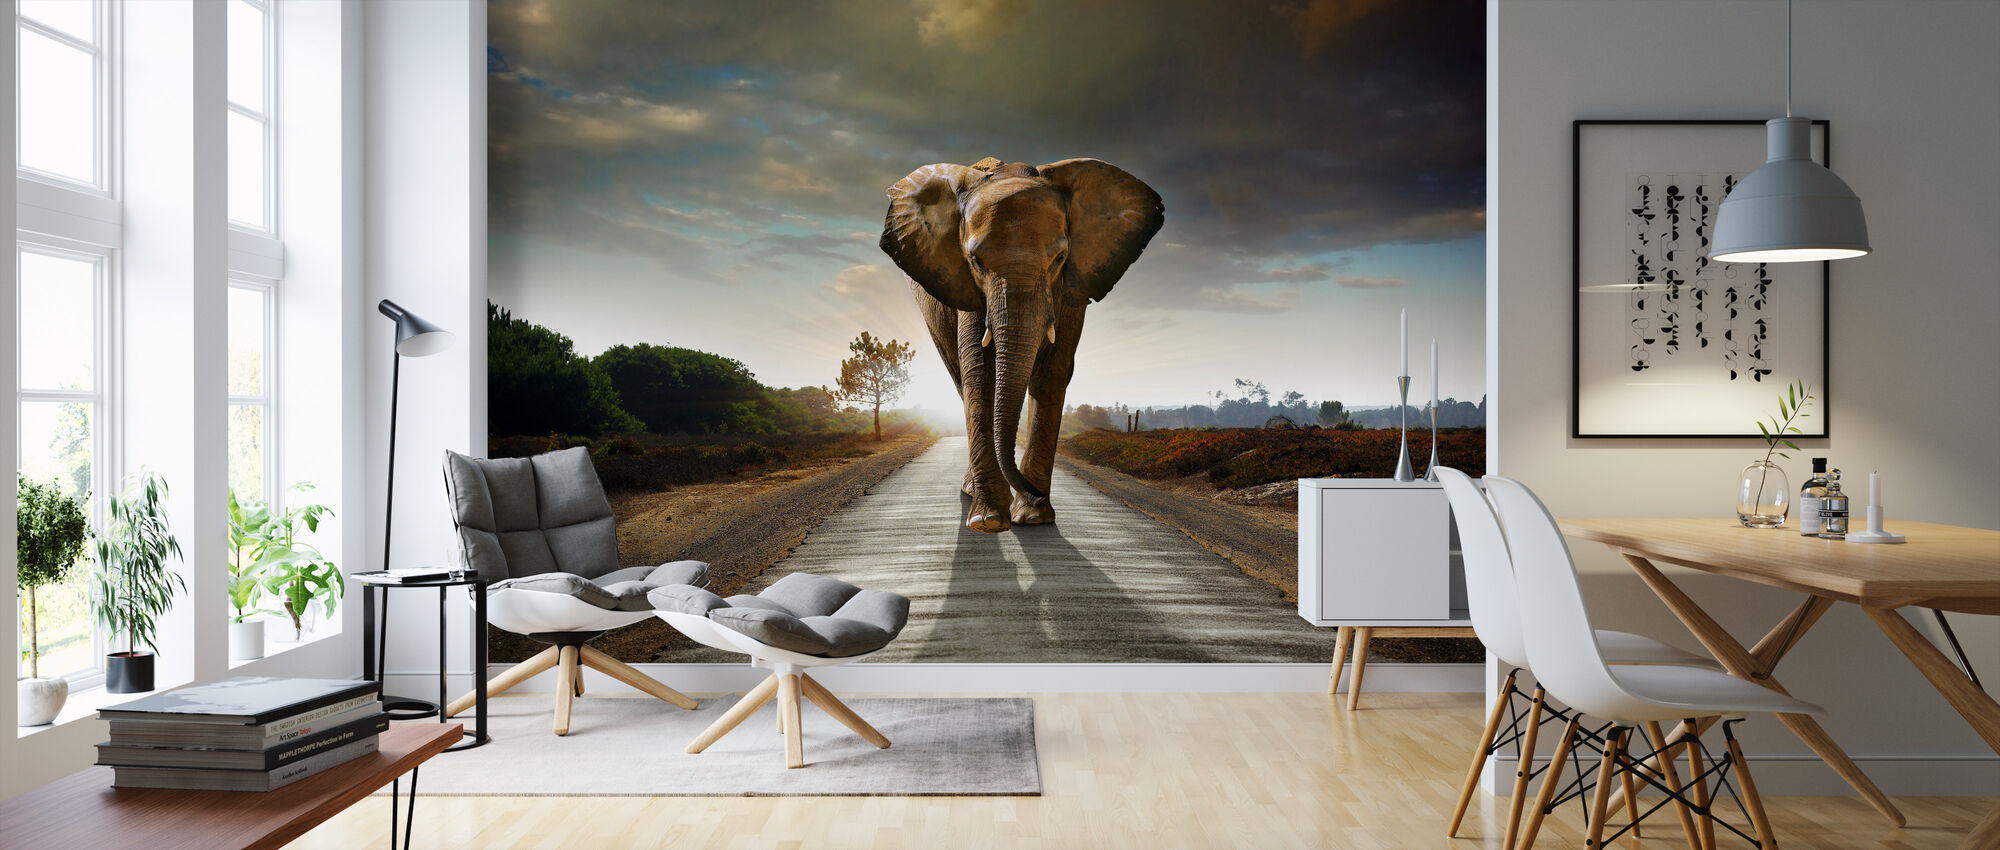 elephant road fototapete nach ma photowall. Black Bedroom Furniture Sets. Home Design Ideas